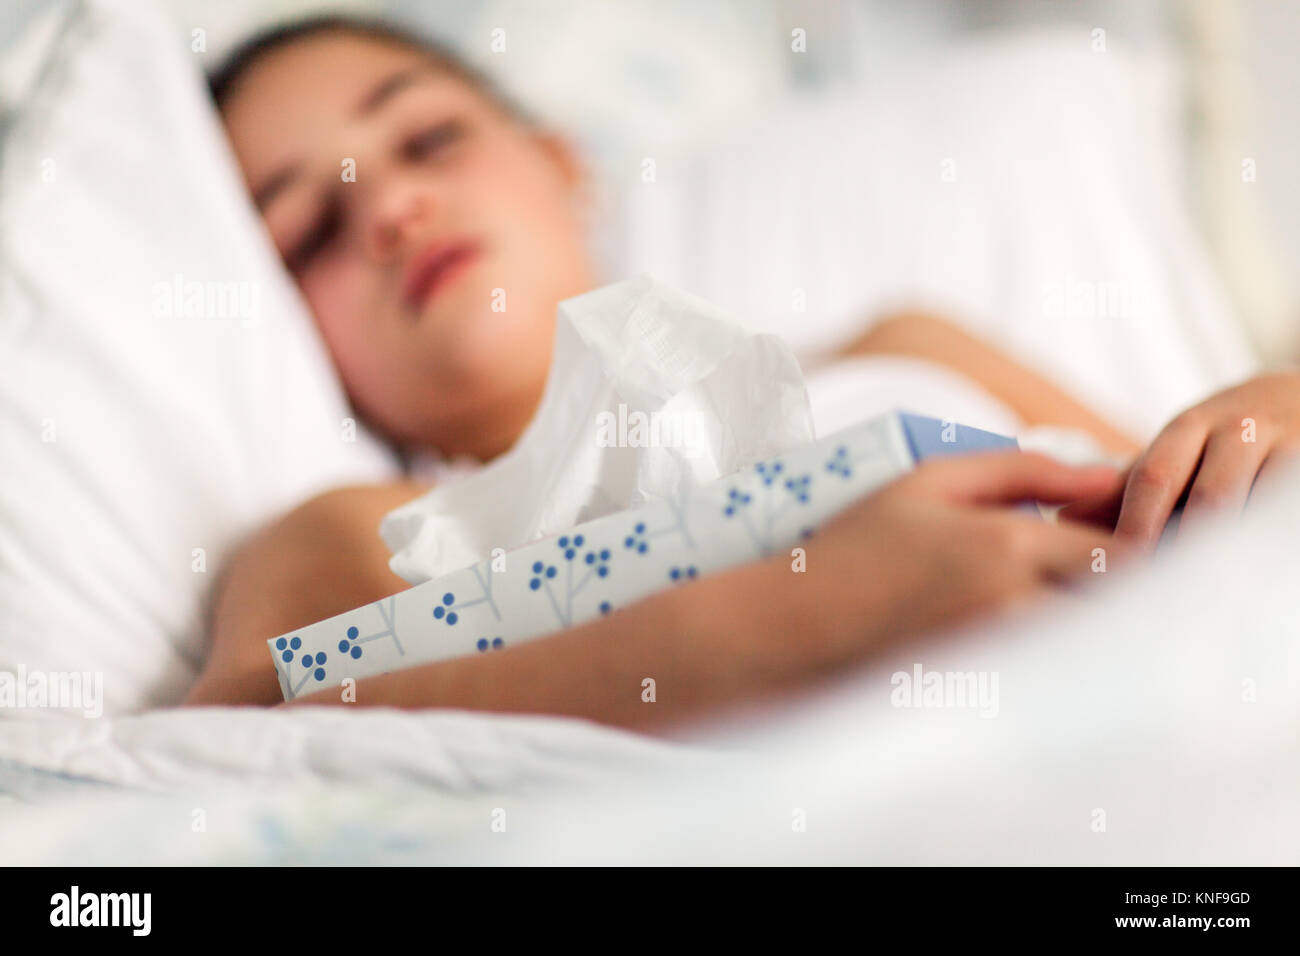 Girl in bed holding box of tissues - Stock Image